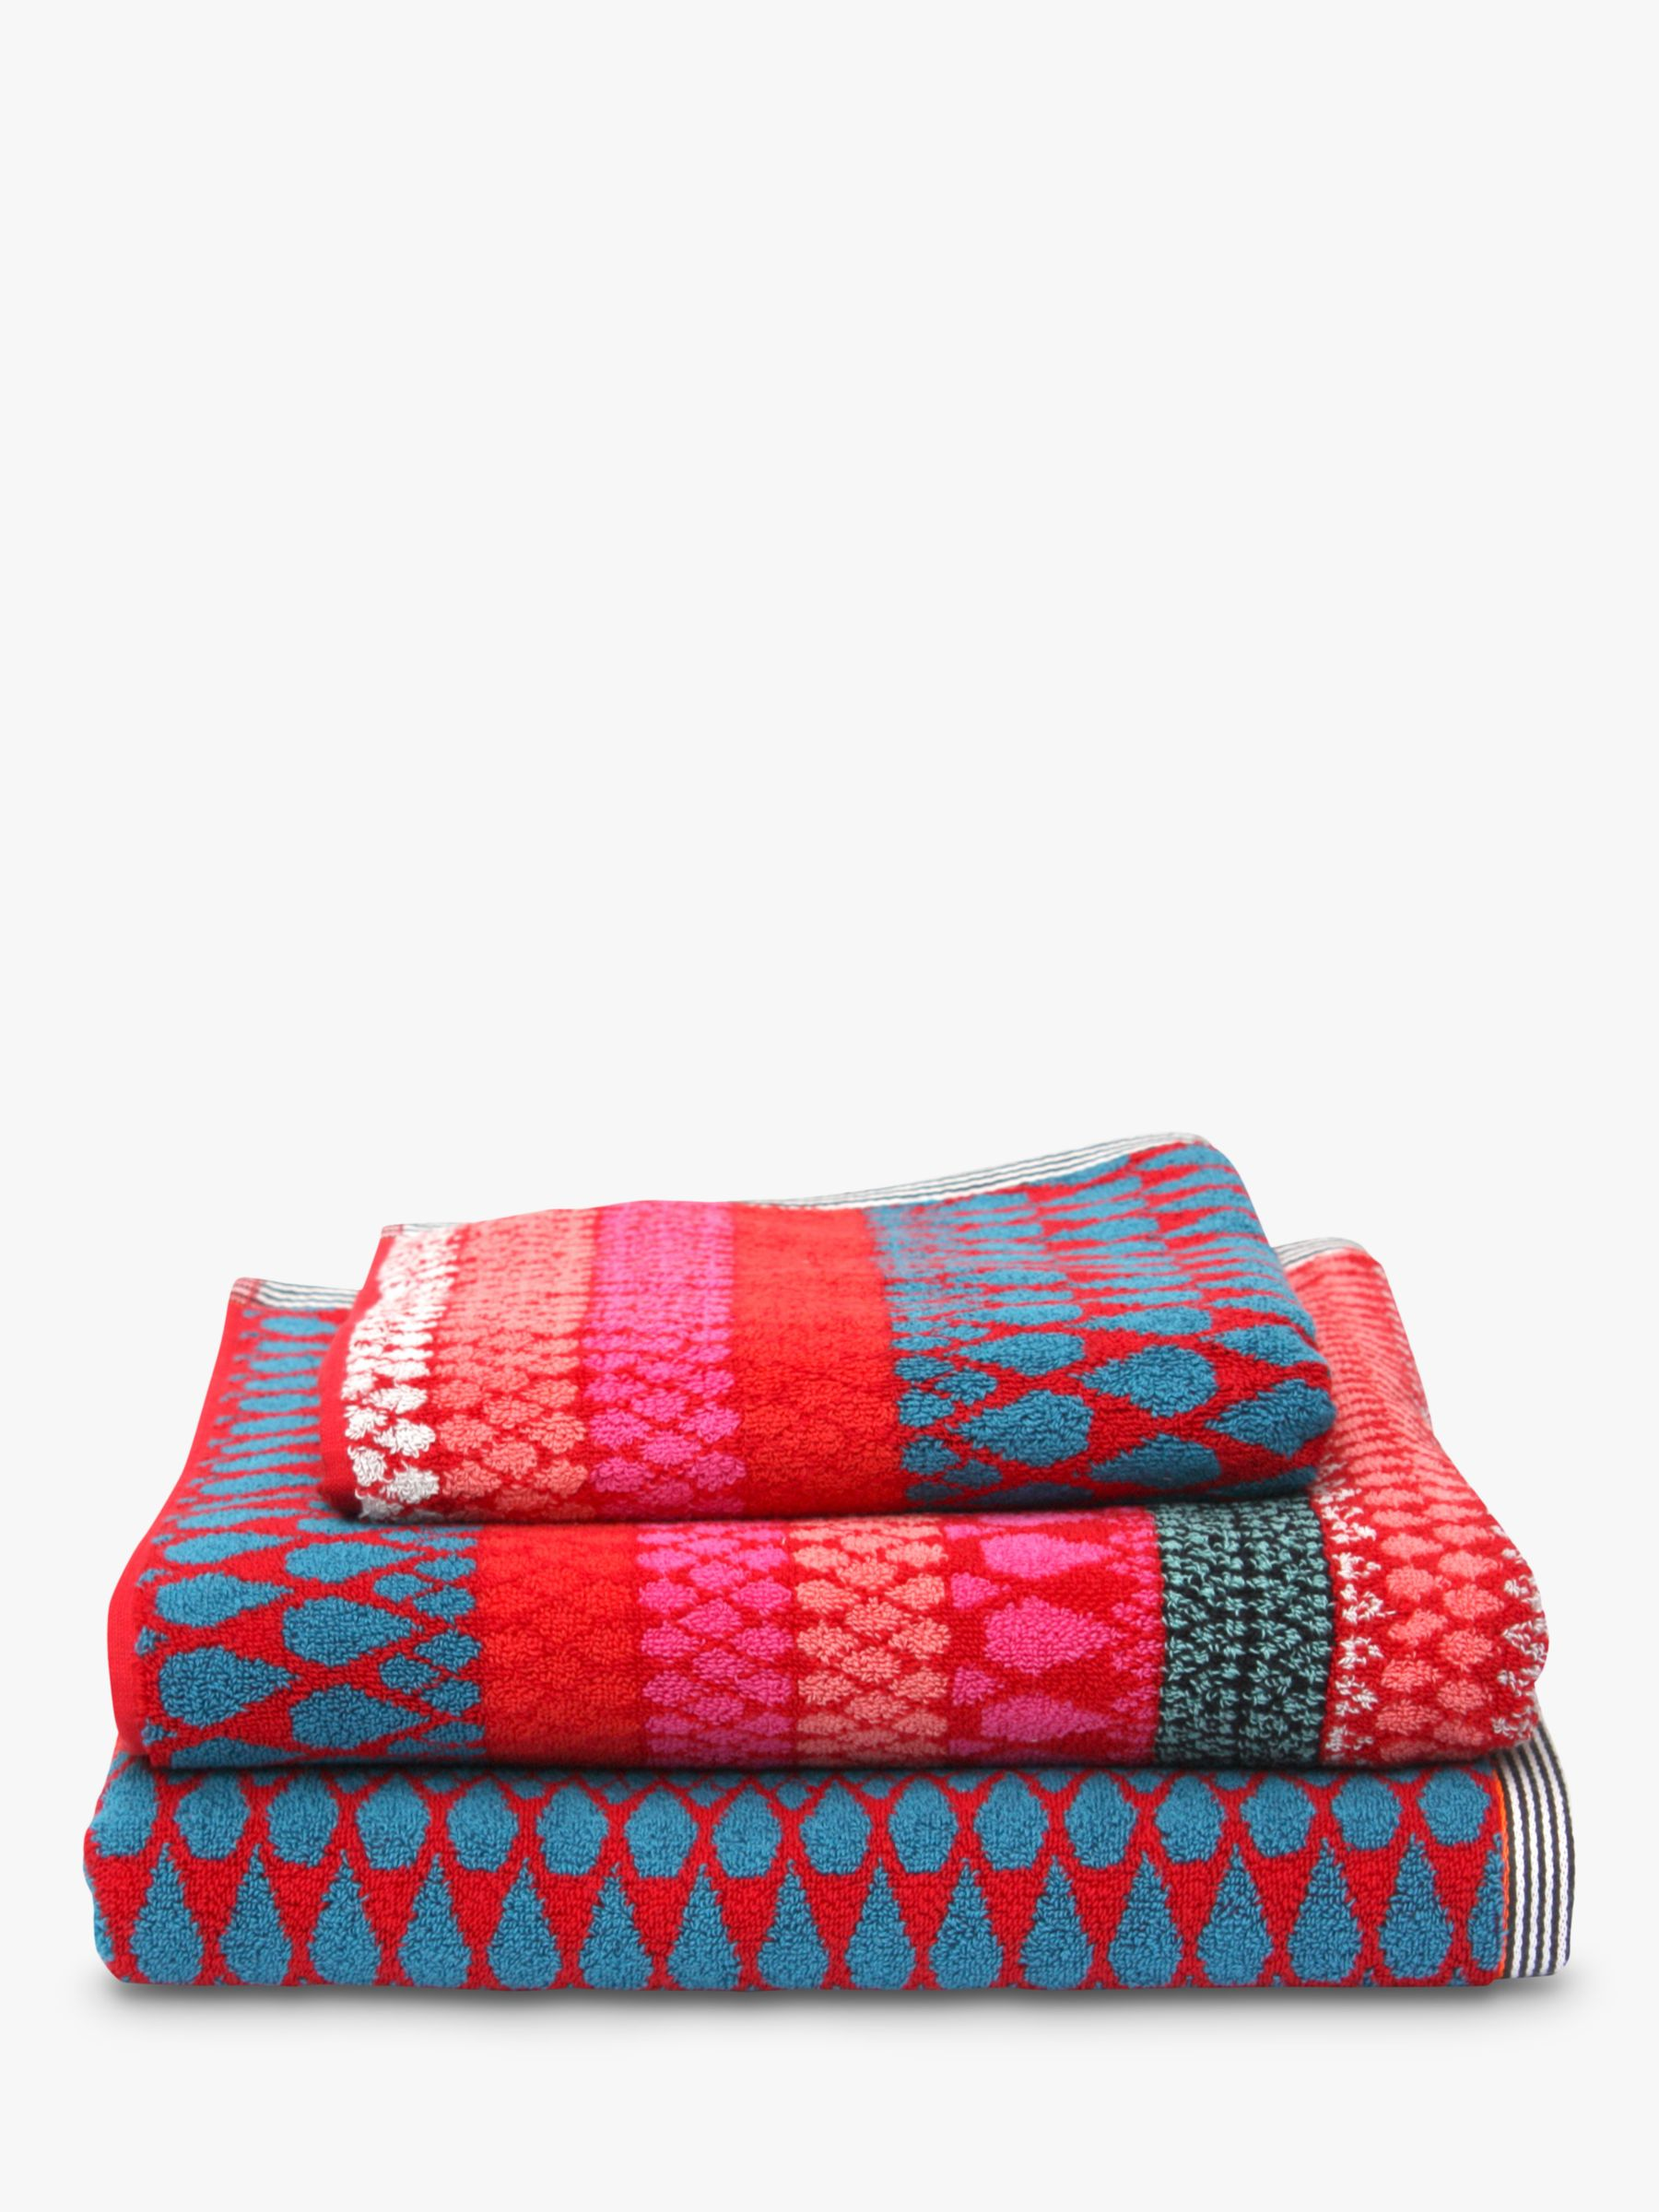 Margo Selby Margo Selby for John Lewis Faversham Towels, Red